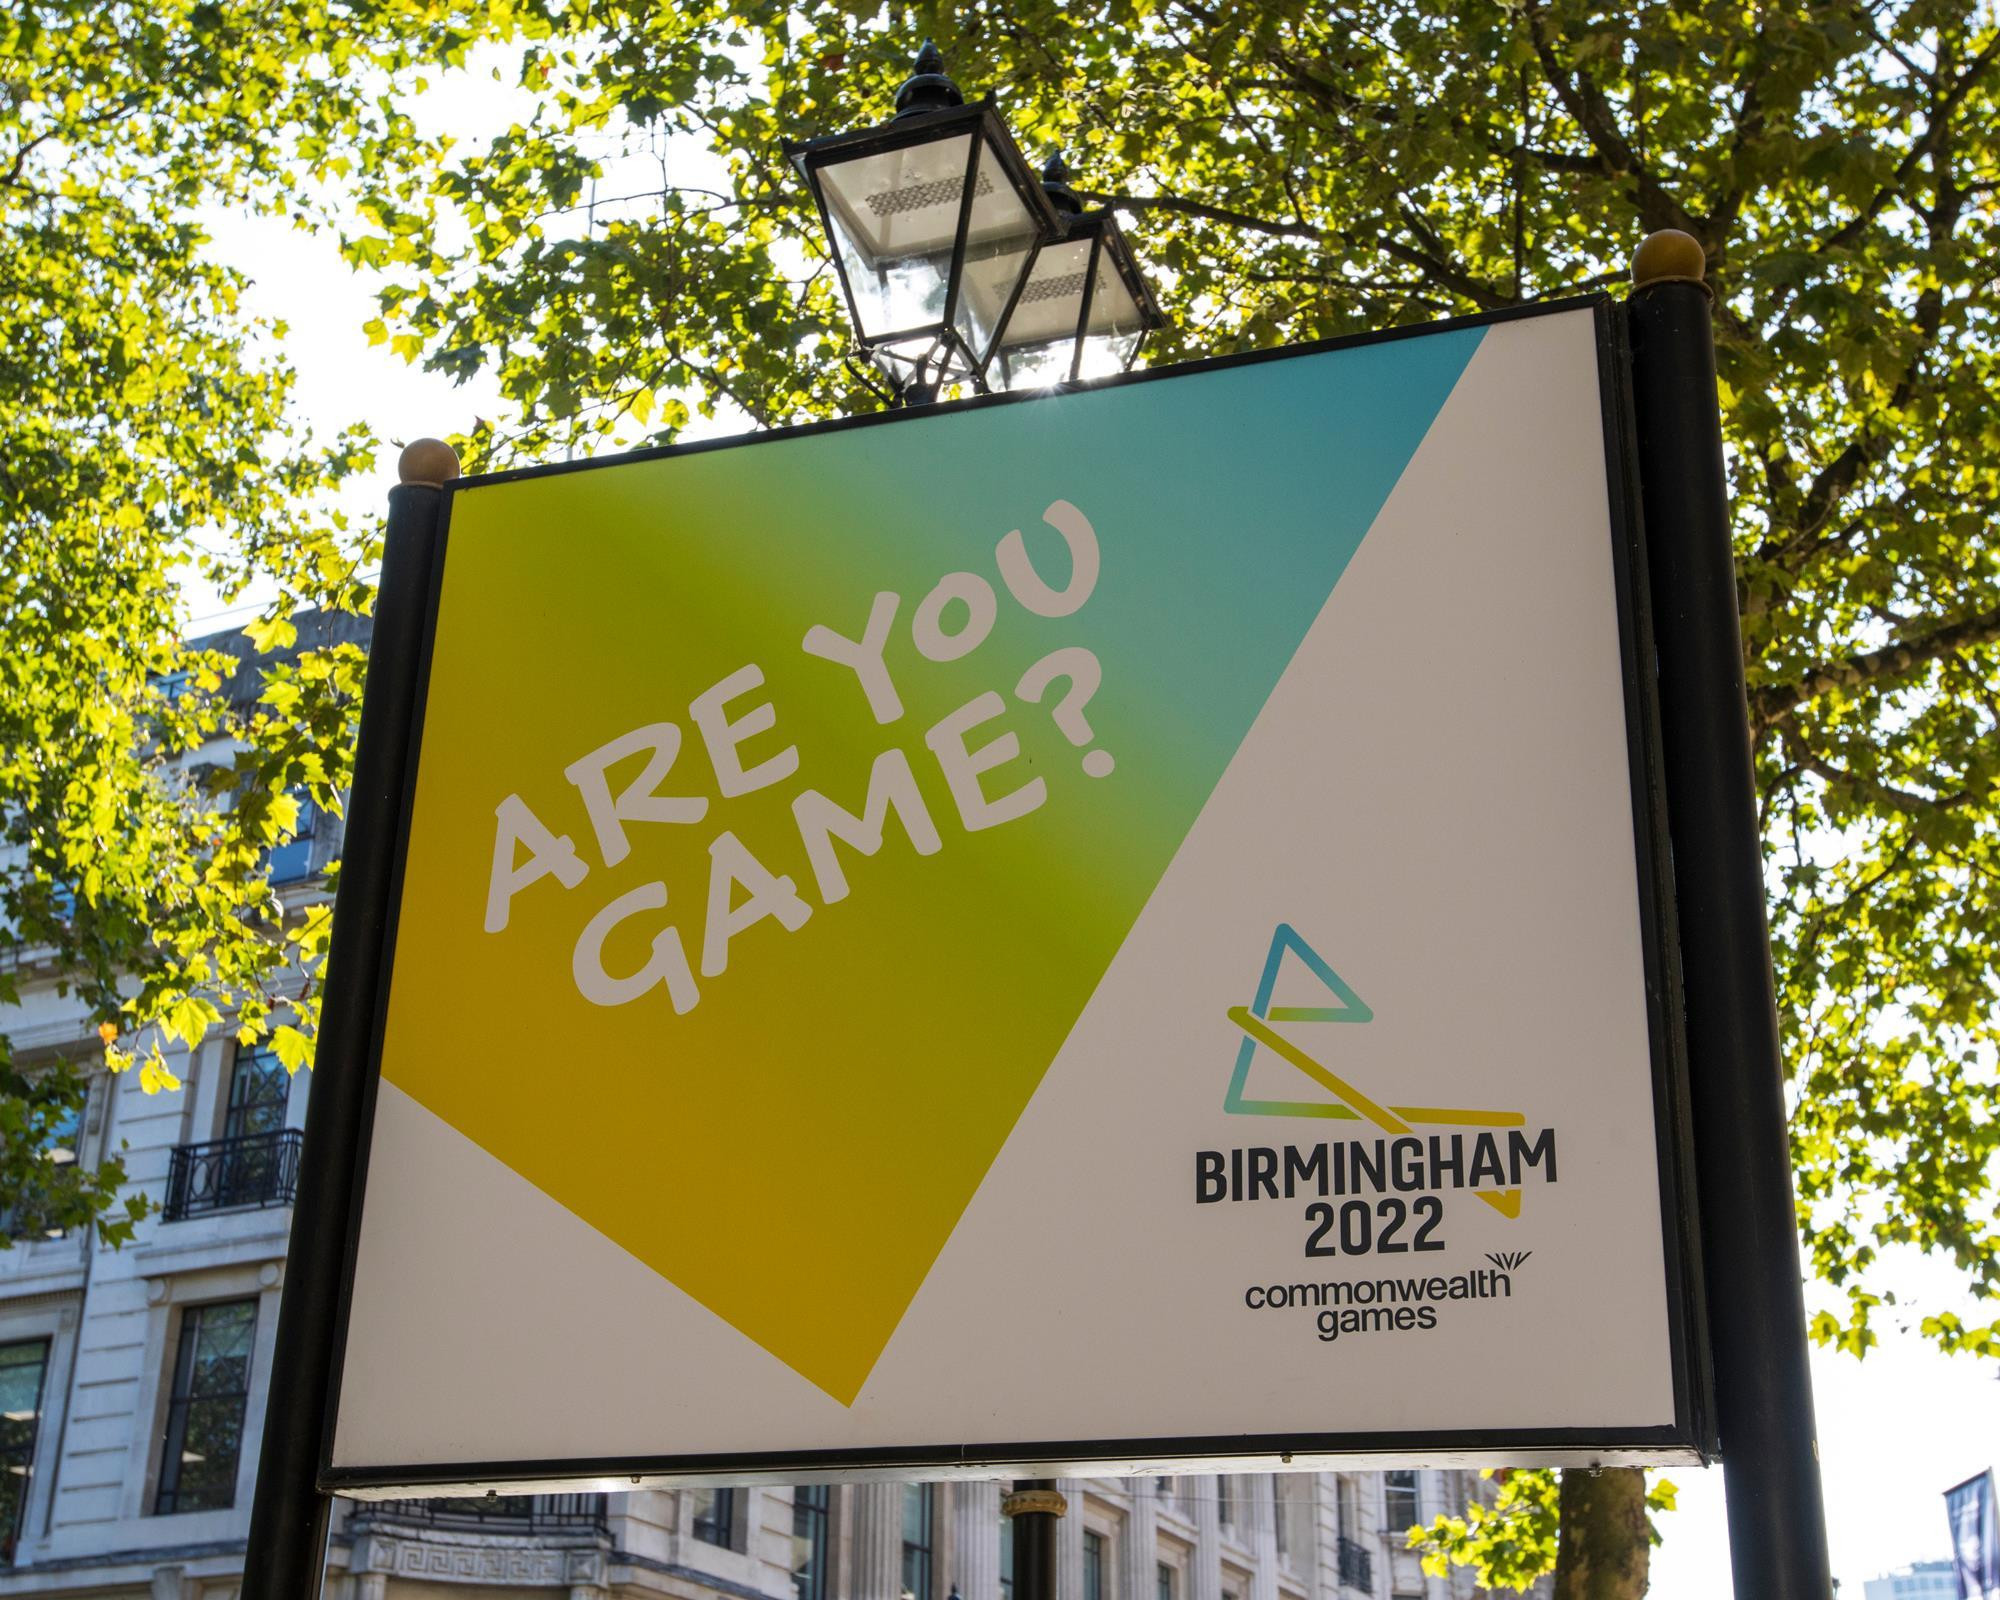 Birmingham 2022 drive for BAME businesses introduced